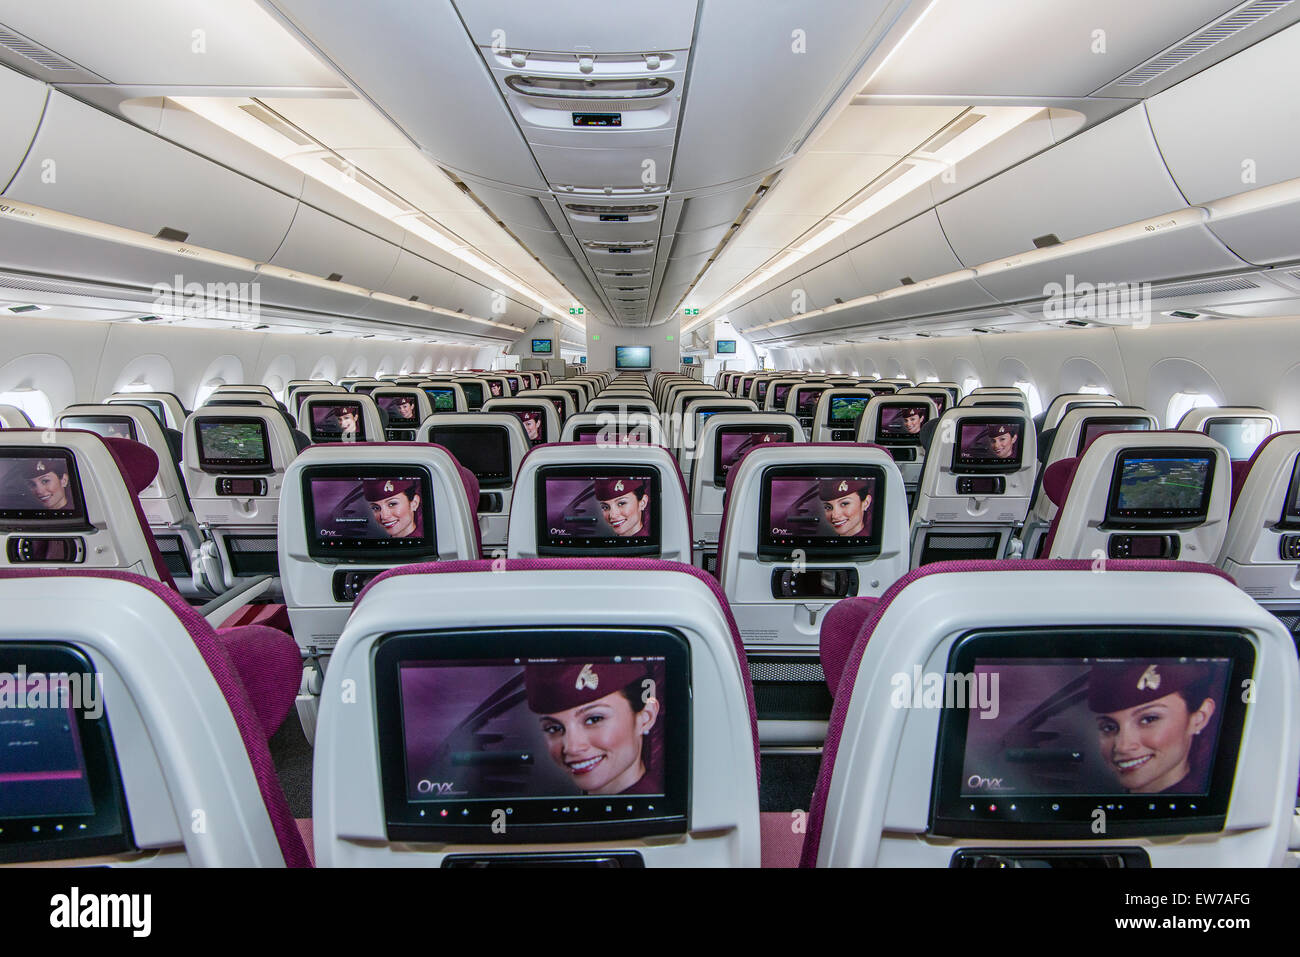 Interior view of the economy class section of the Qatar Airways Airbus A350-900 - Stock Image